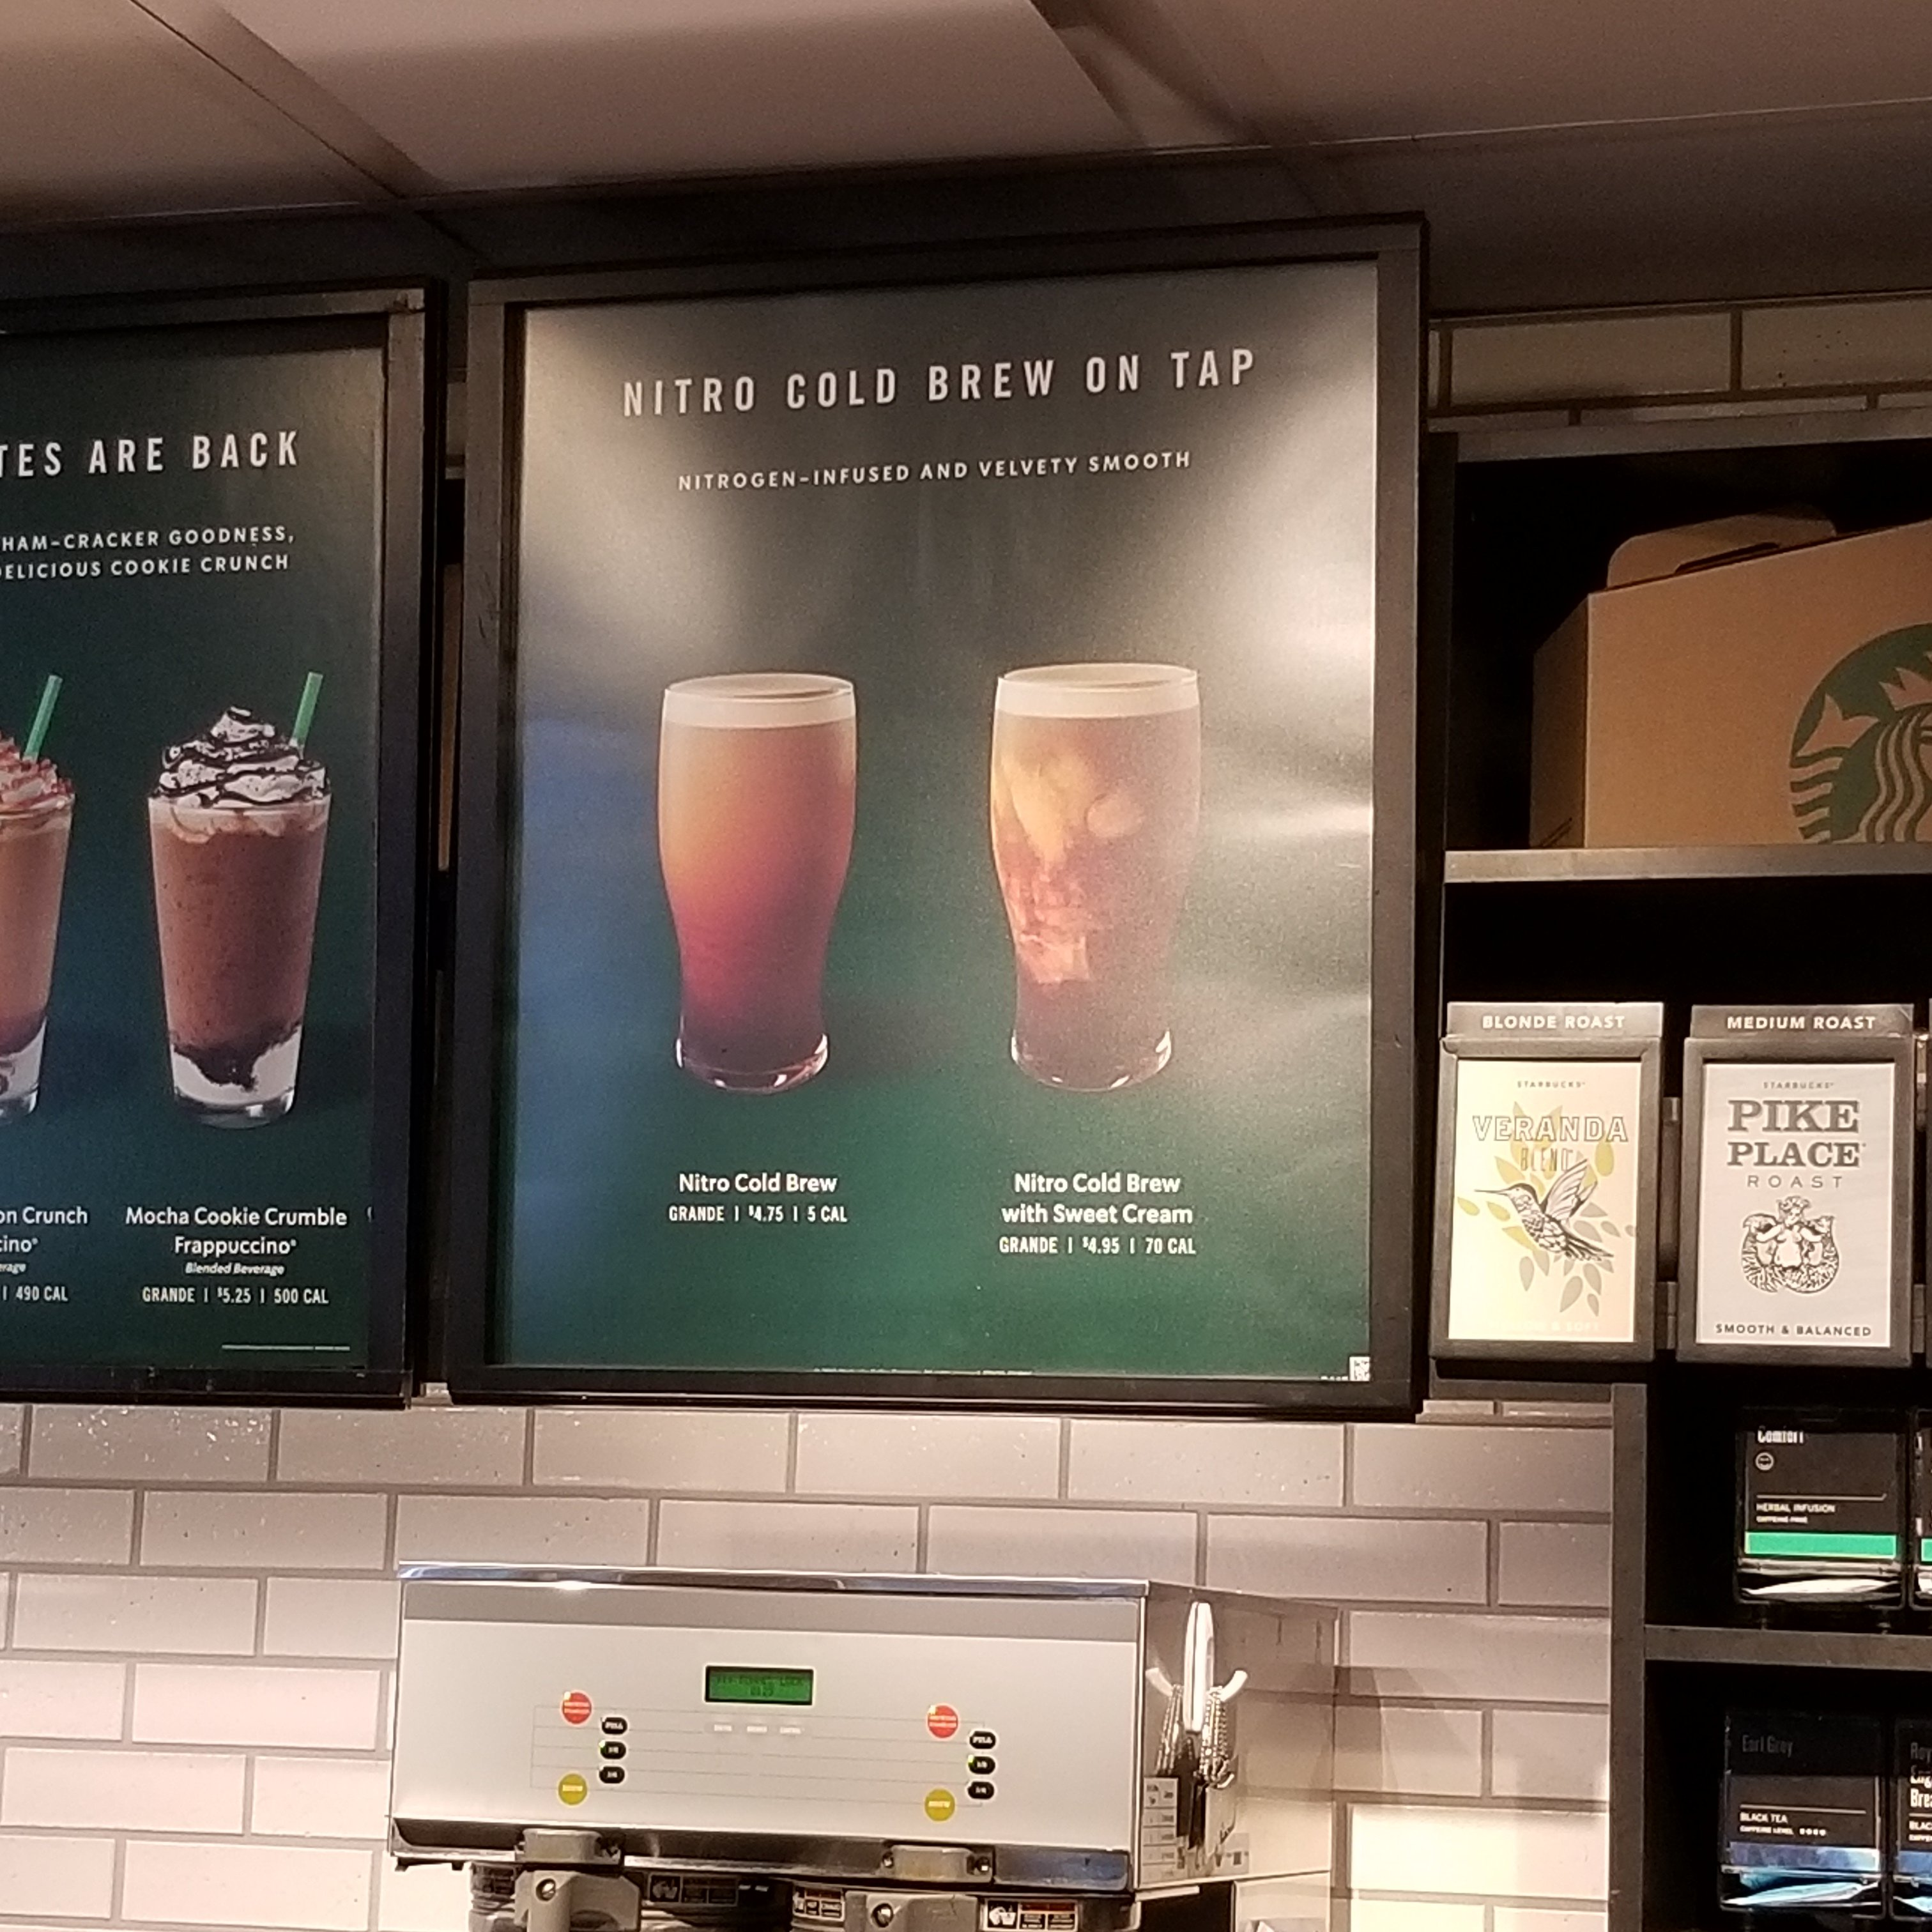 Starbucks Nitro Cold Brew Like Beer On Tap 5 Calories